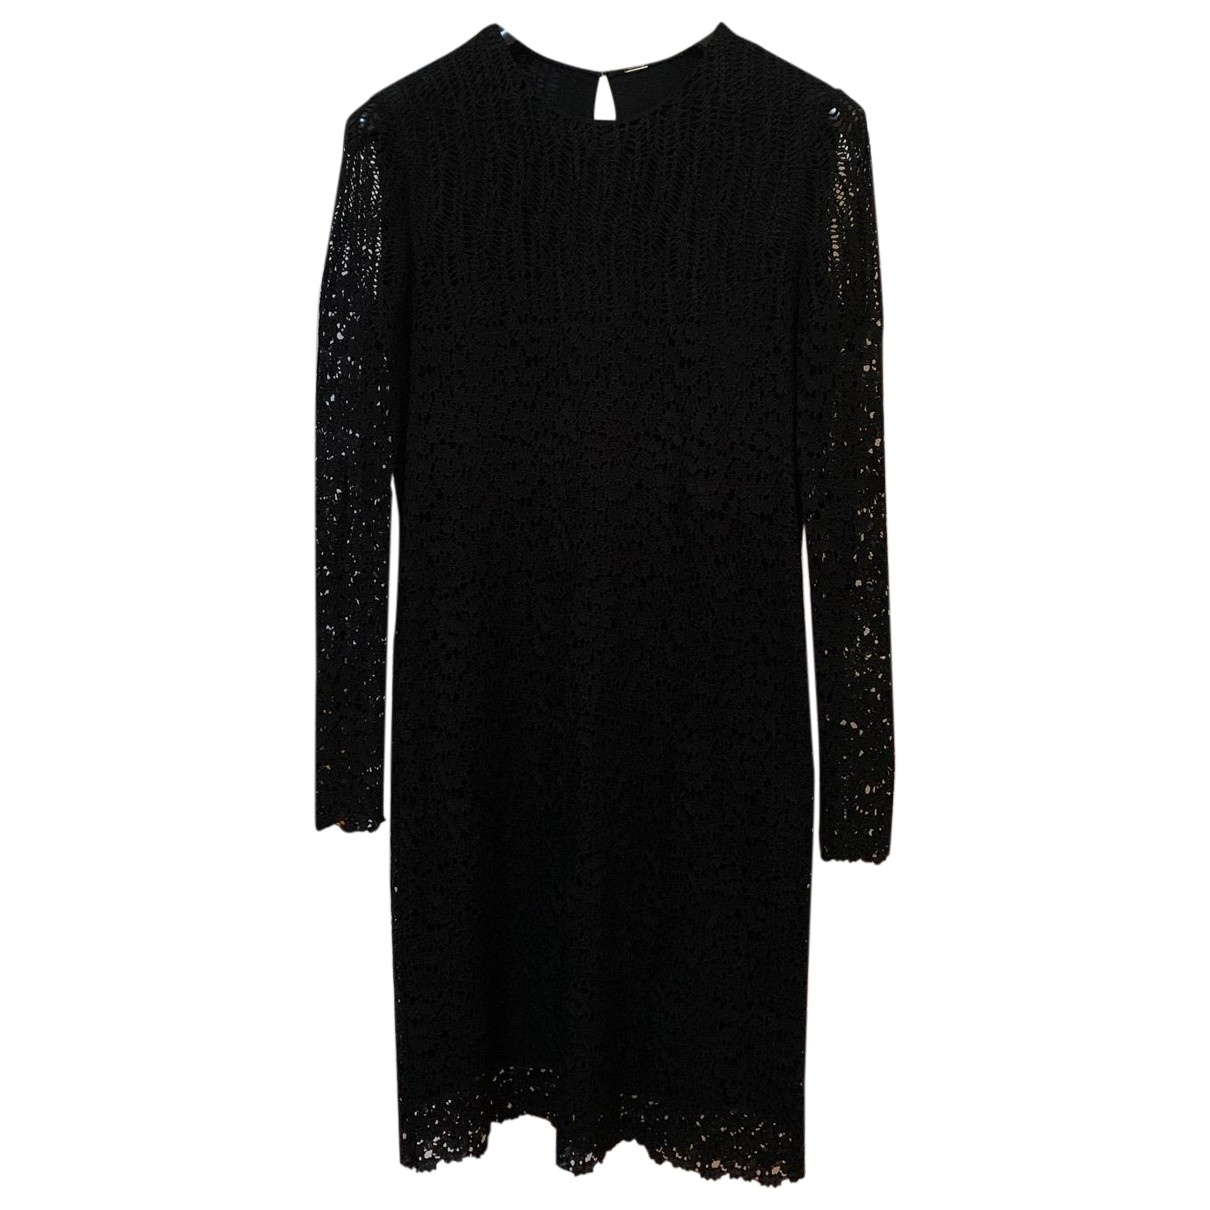 Adam Lippes \N Black Lace dress for Women 10 US